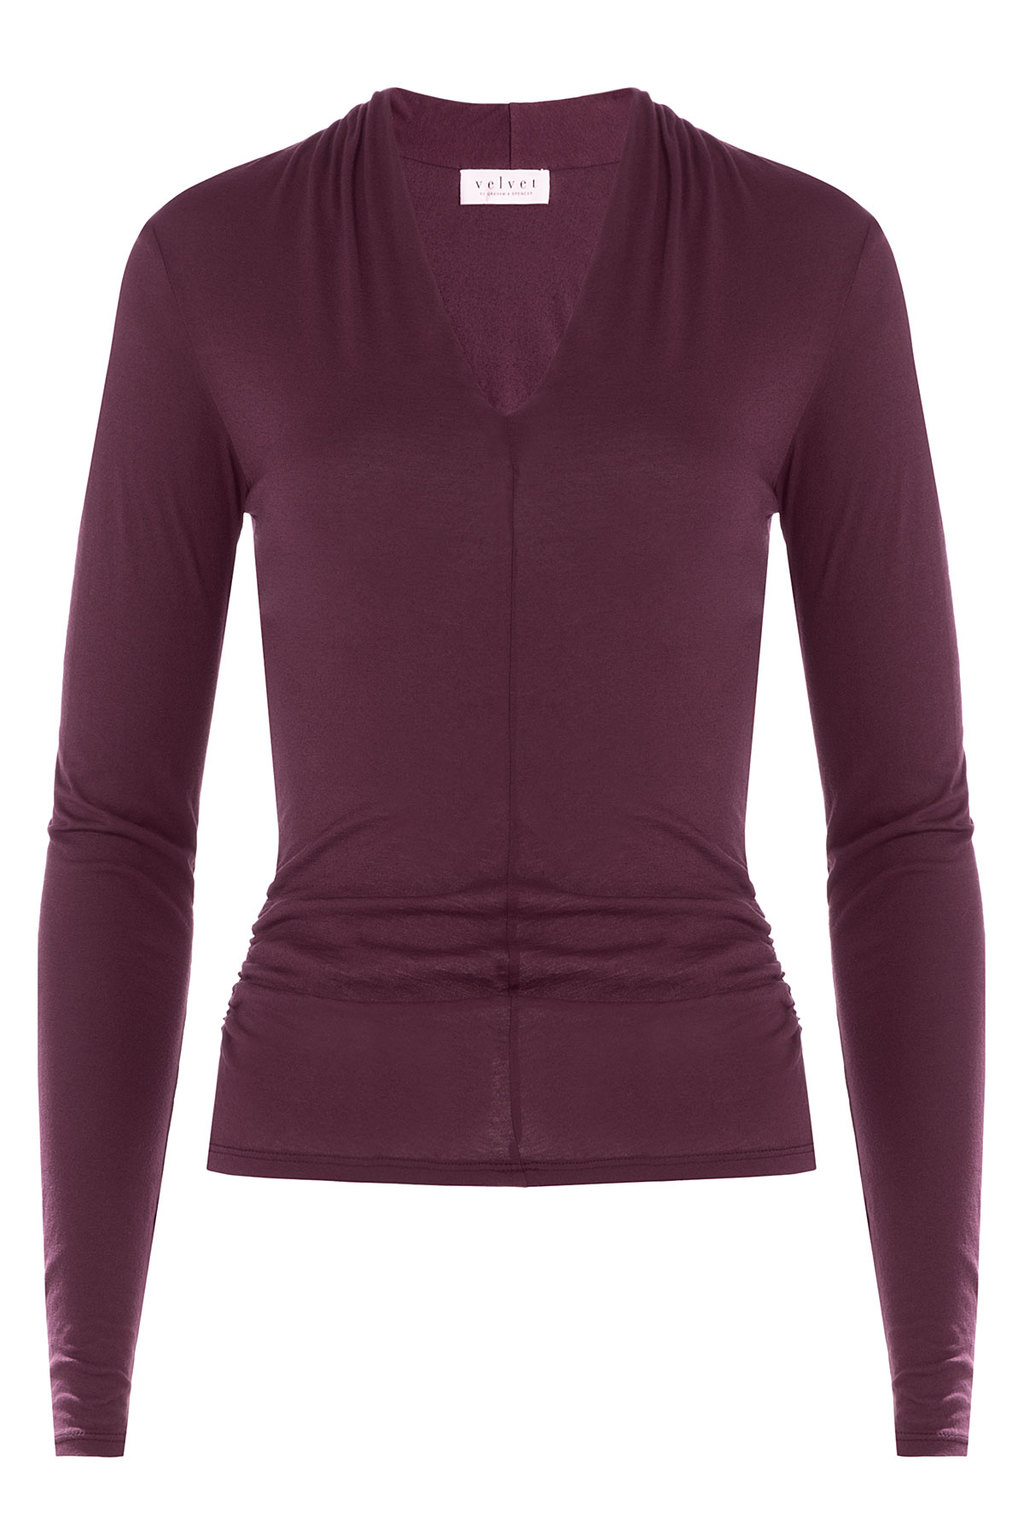 Cotton Top Red - neckline: v-neck; pattern: plain; predominant colour: aubergine; occasions: casual, creative work; length: standard; style: top; fibres: cotton - 100%; fit: body skimming; sleeve length: long sleeve; sleeve style: standard; pattern type: fabric; pattern size: standard; texture group: jersey - stretchy/drapey; season: a/w 2015; wardrobe: highlight